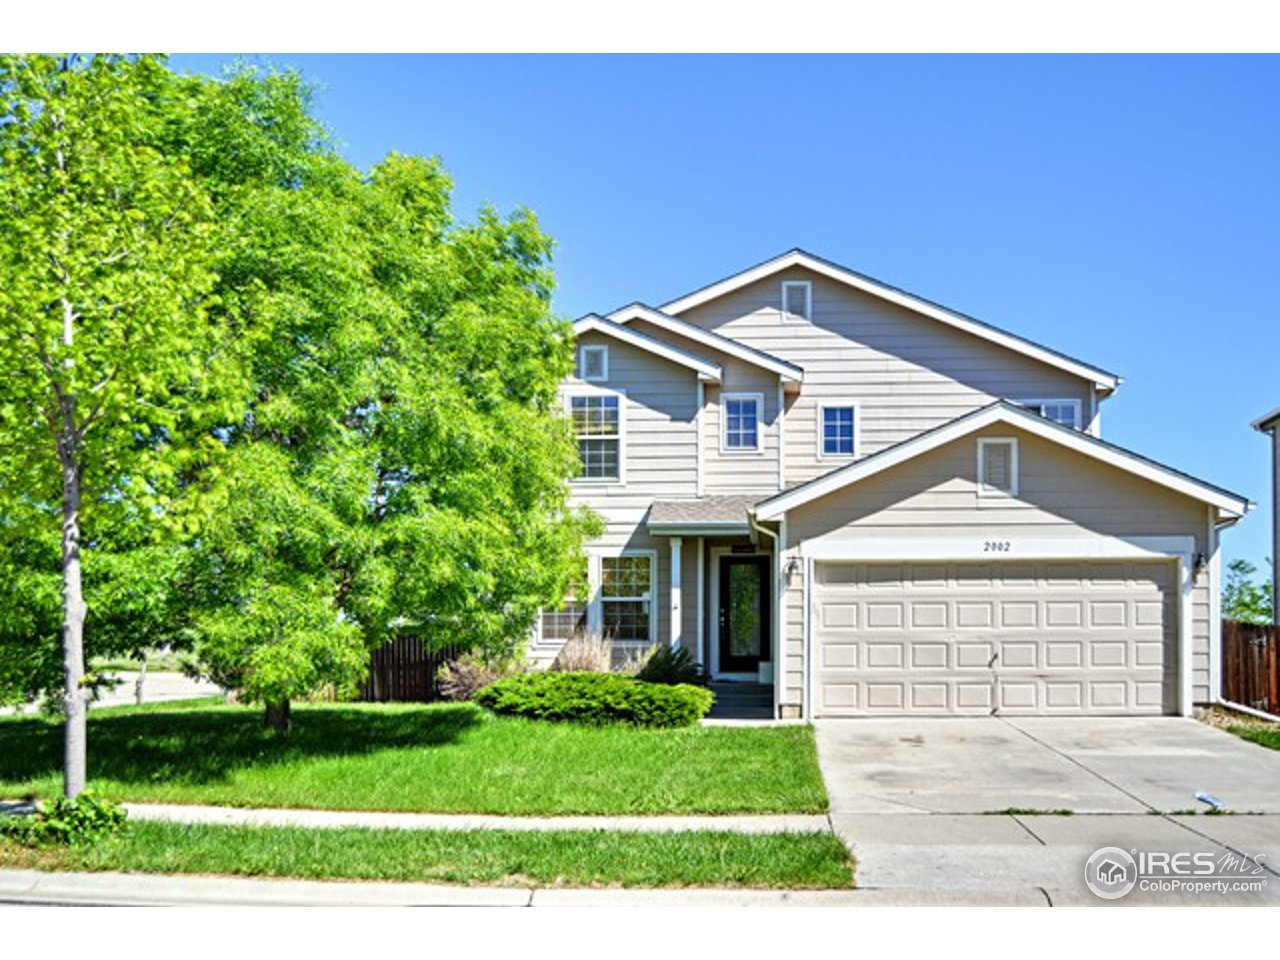 2002 Outrigger Way, Fort Collins, CO 80524